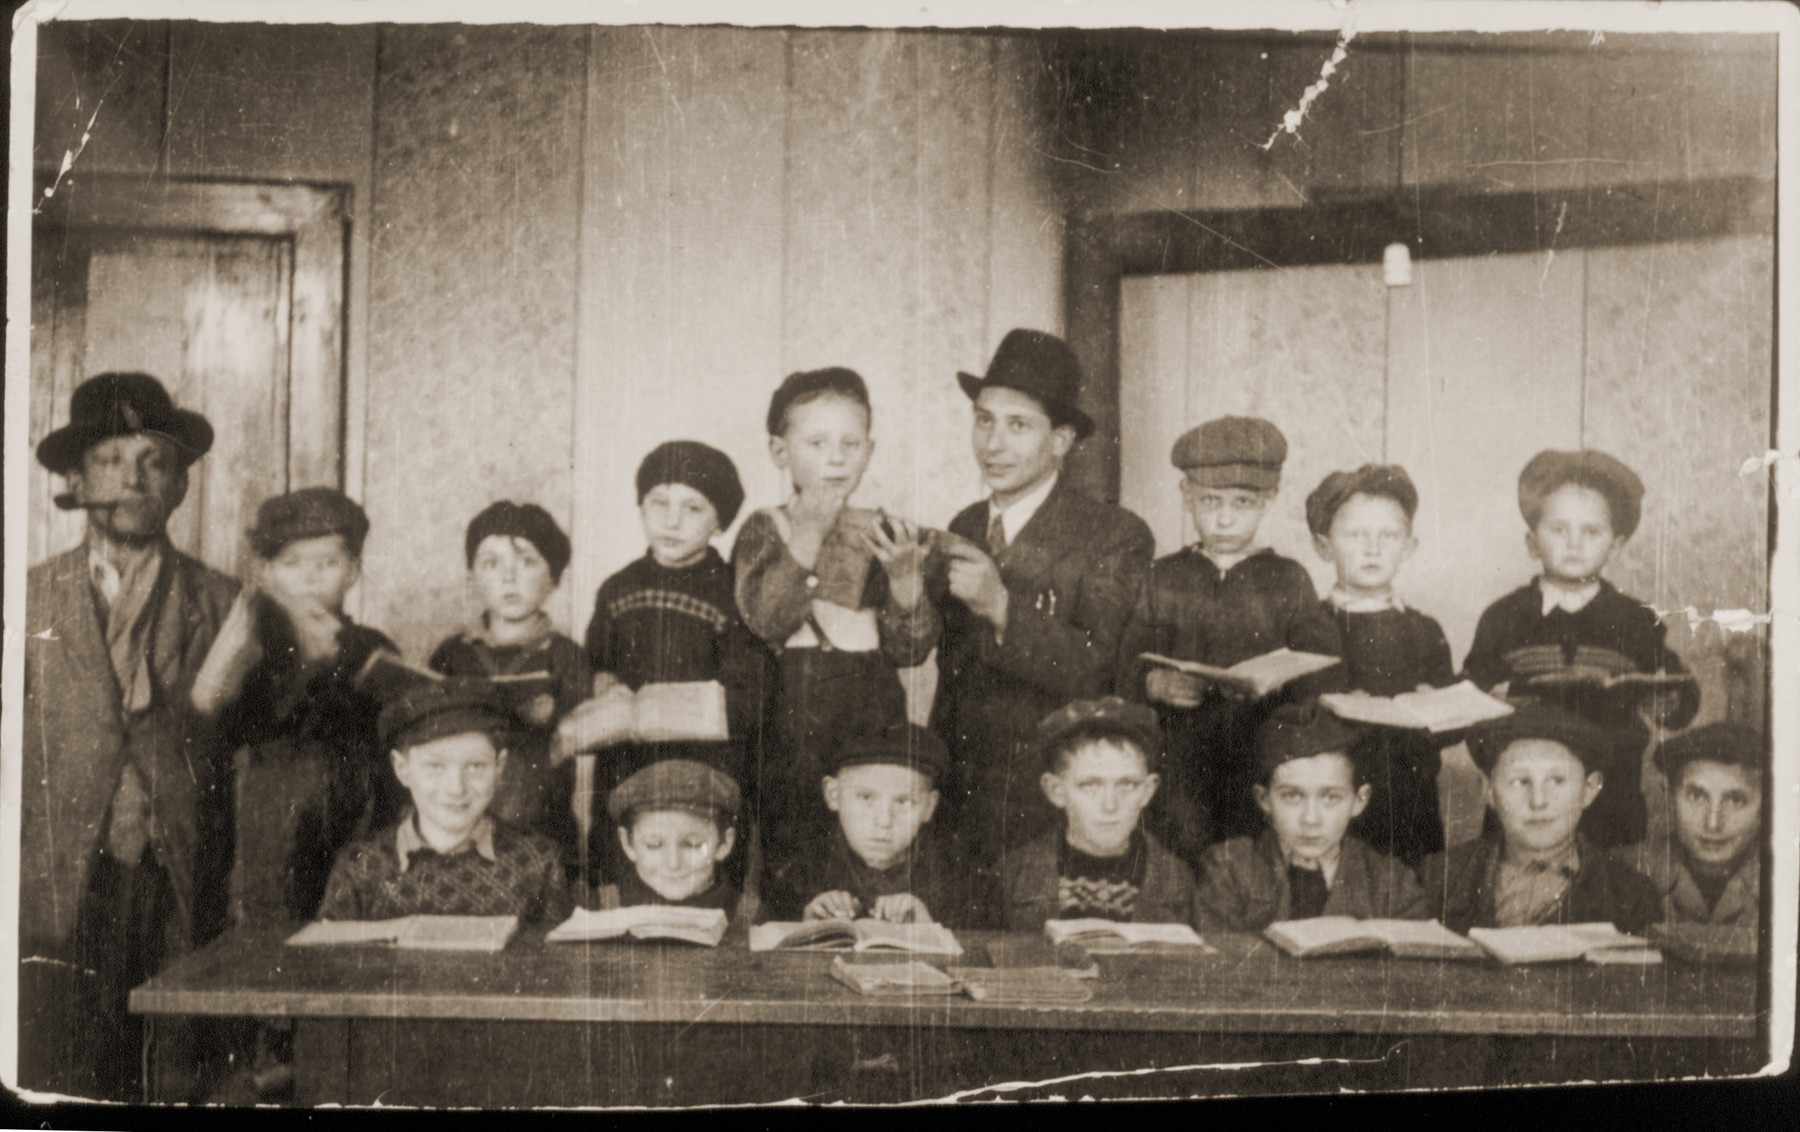 Group portrait of Jewish boys studying traditional Jewish texts at a religious school in the Feldafing displaced persons camp.  Seated from left to right are: Yaakov Stetsky, Moshe Bertram, Alter Rothbart, Moshe Lotman, Aaron Tzuckerman, Moshe Epstein and Avrohom Strikovsky.  Standing from left to right are: the synagogue director, Chaim Birnbaum, Mottel Sobolsky, Leibele Bzshisky, Wolf Strasberg, Avrohom Rosenberg, the teacher, Meir Katz, Shimon Lipinsky, and Chaim Frashkir.